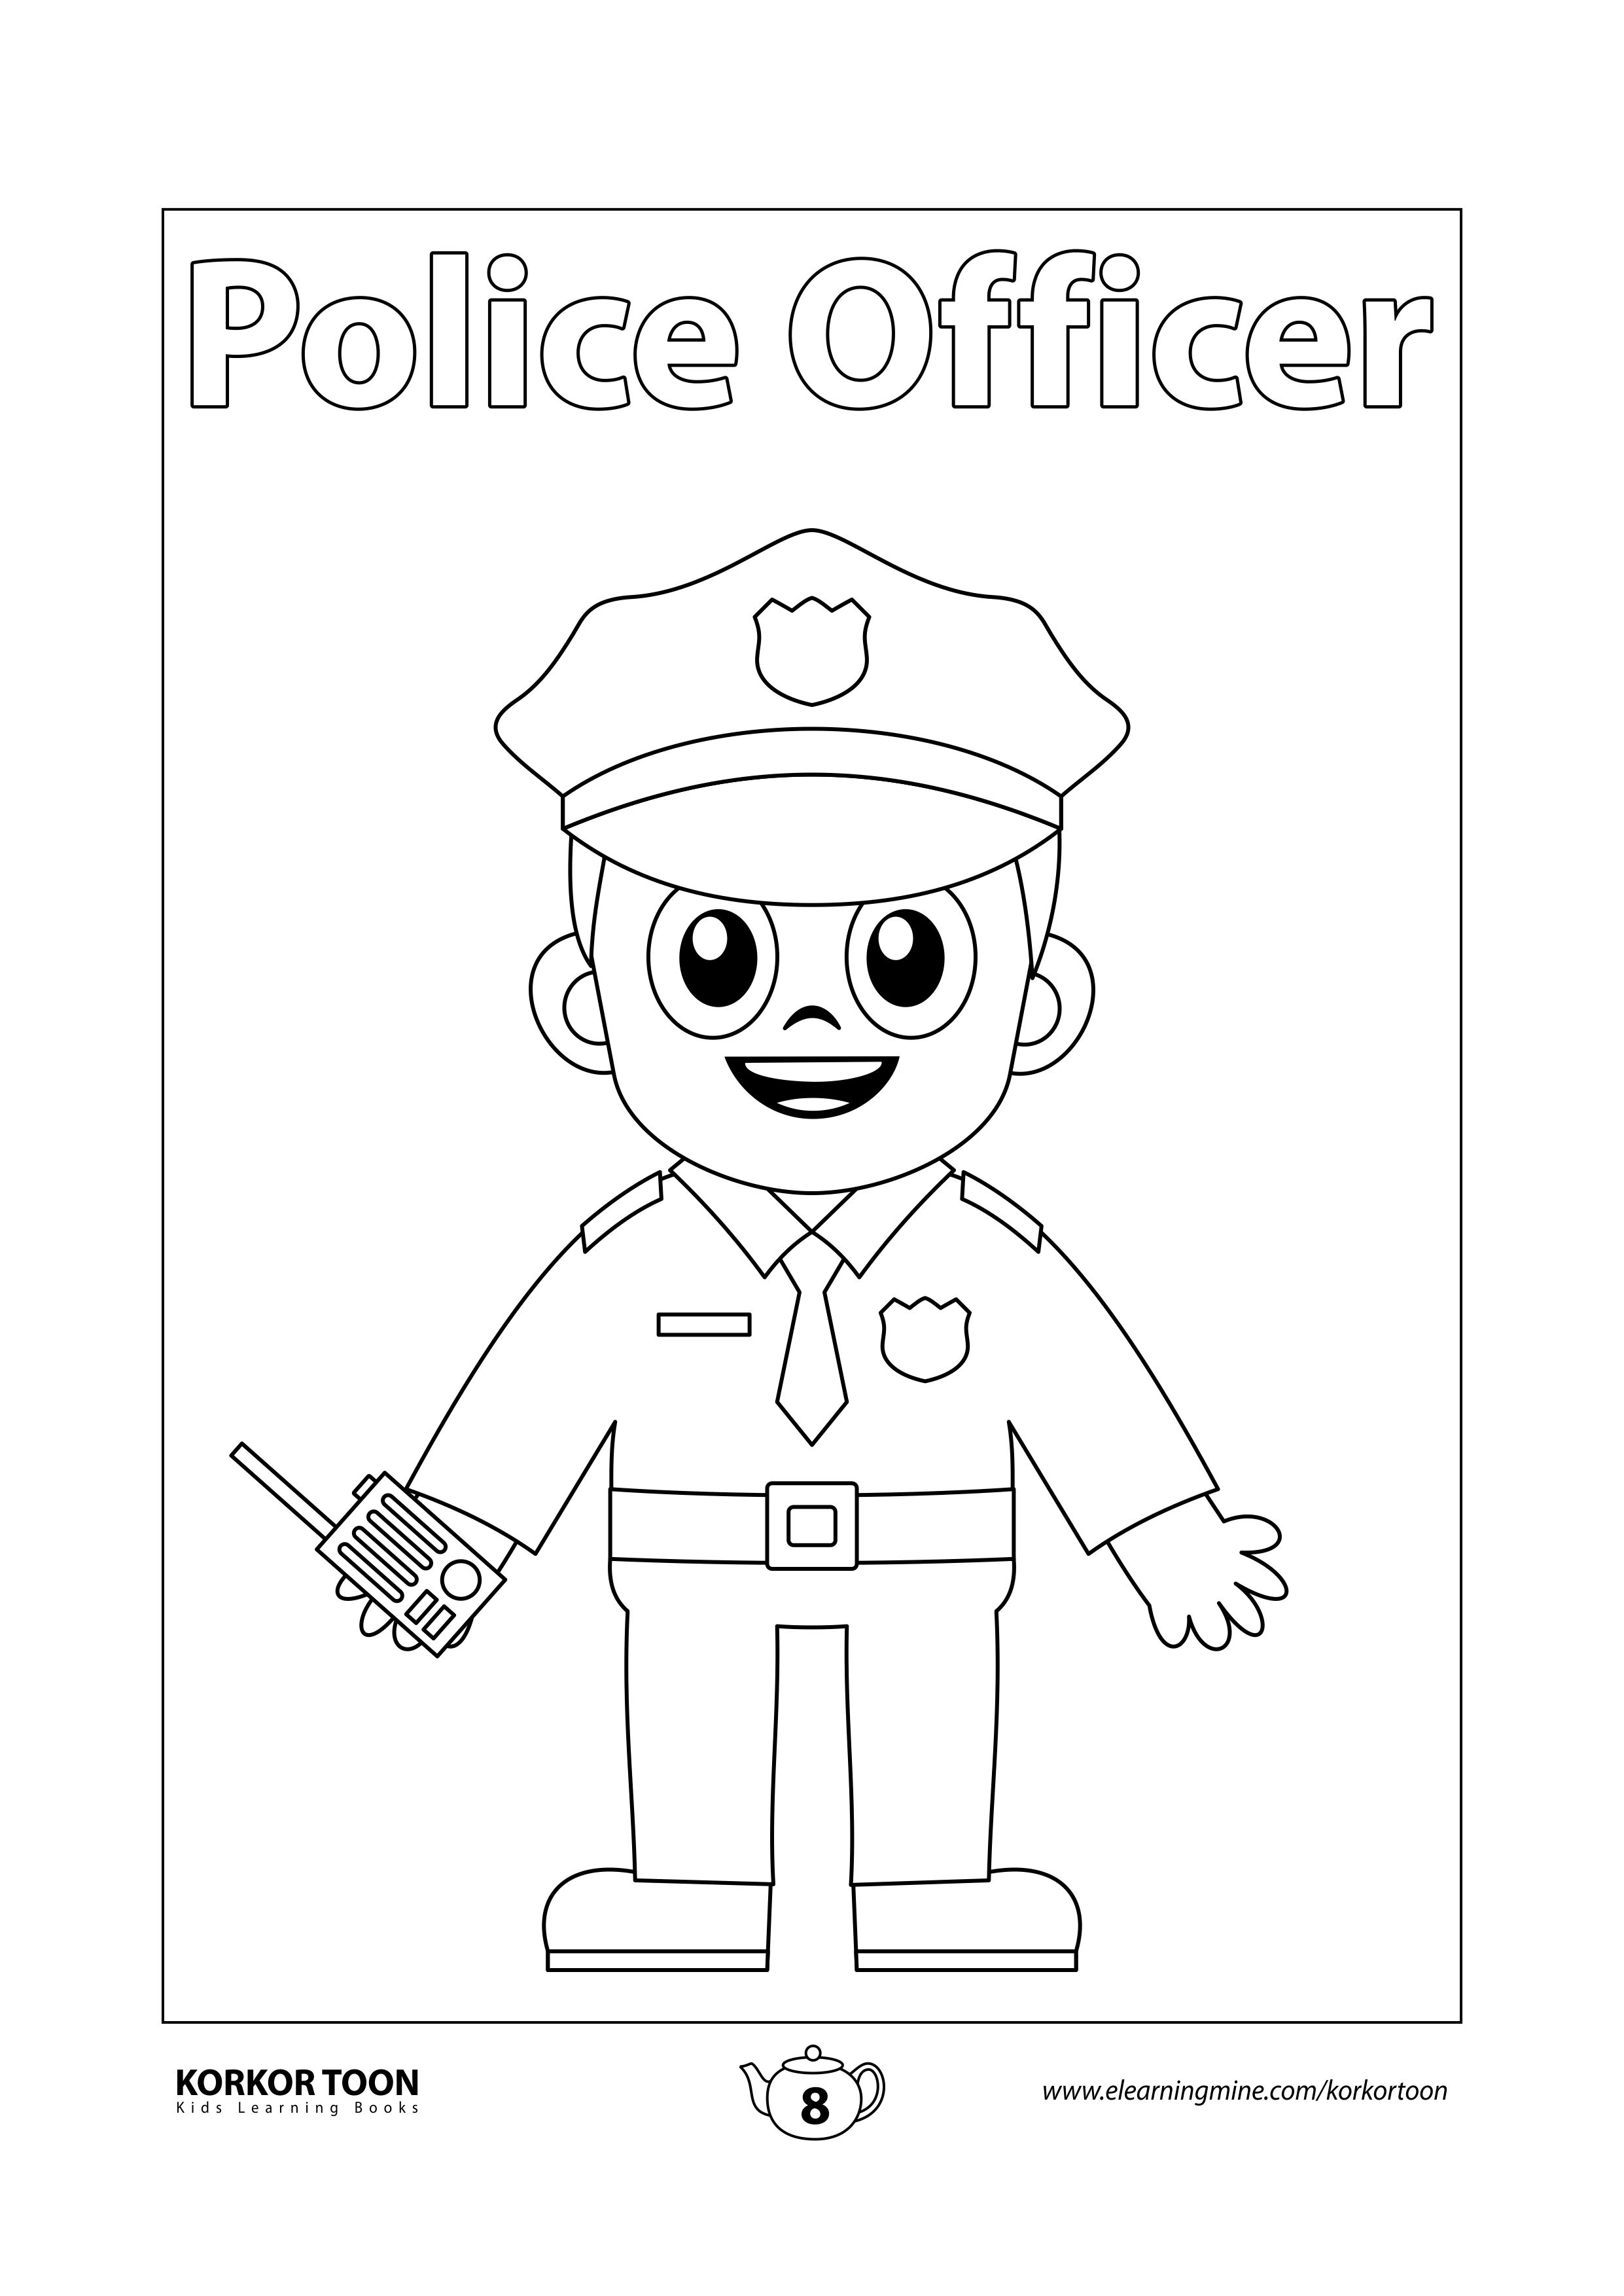 Professions Coloring Book For Kids Police Officer Page 8 In 2020 Kids Coloring Books Coloring Books Printables Free Kids